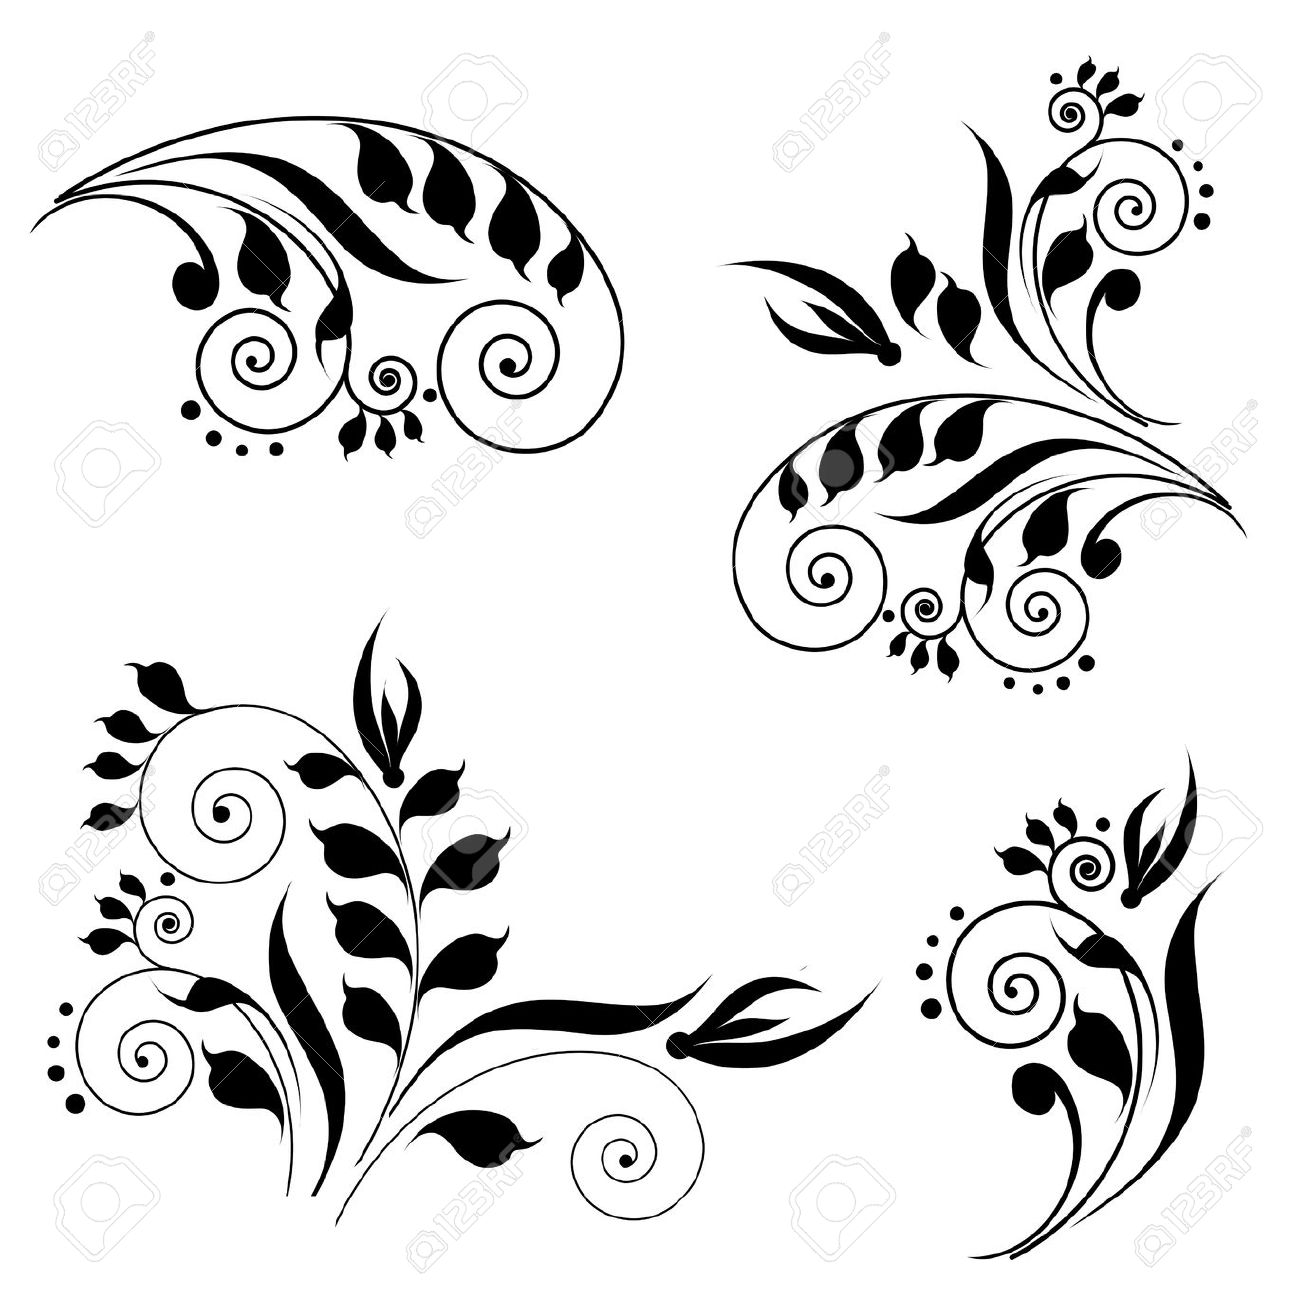 collection of card. Cards clipart wedding